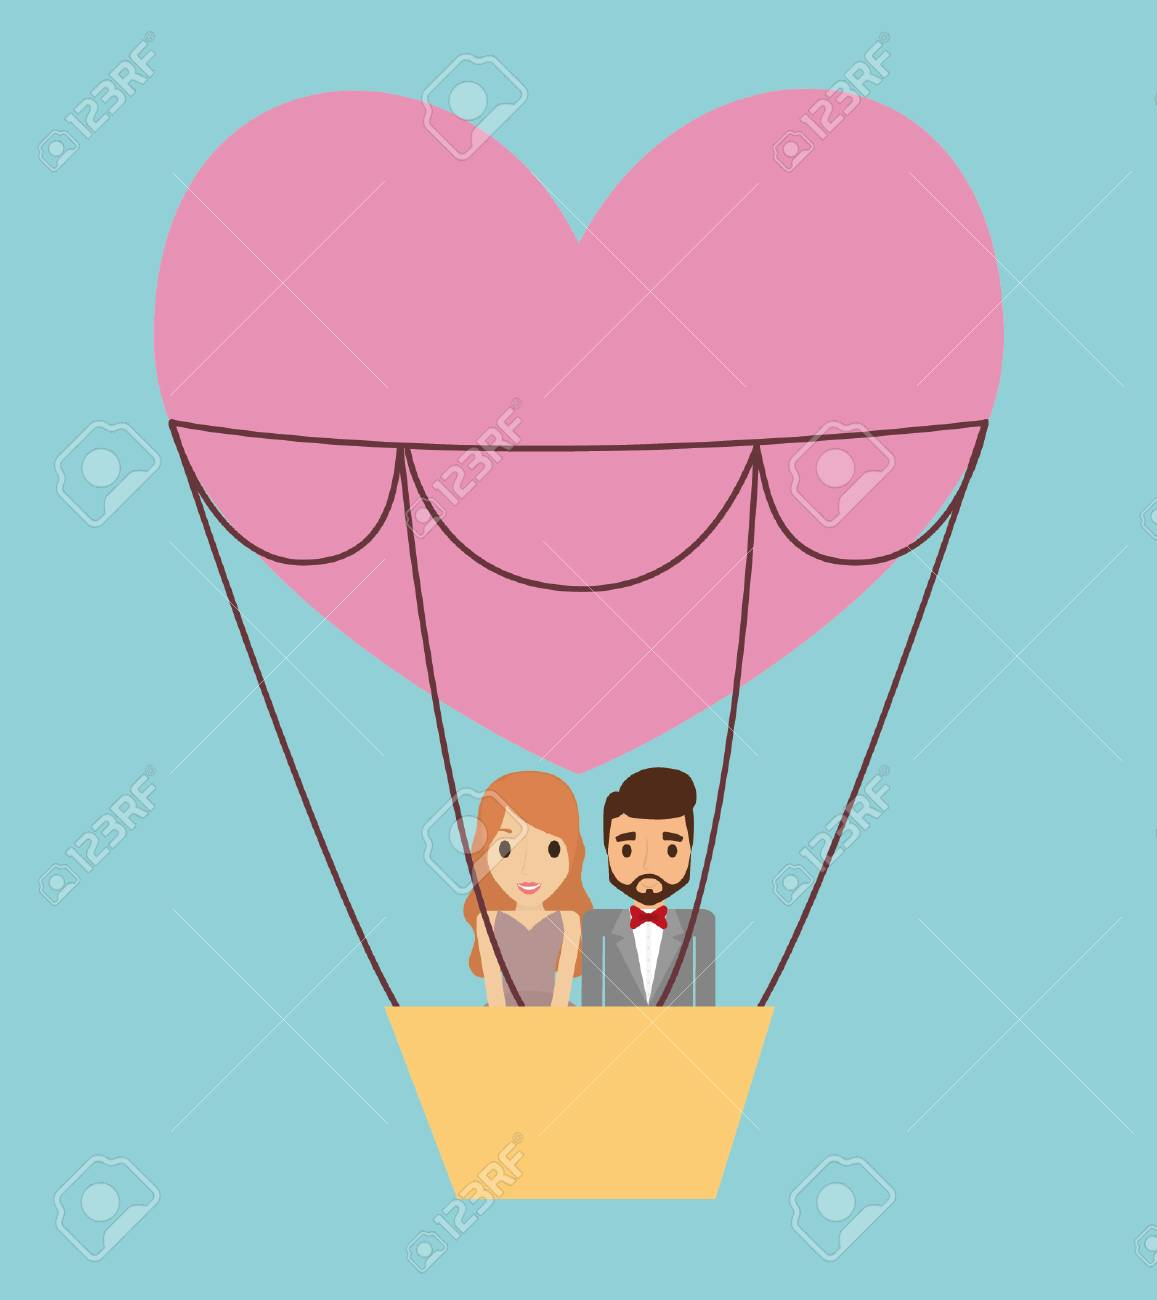 Couple Cartoon And Hot Air Balloon Icon. Save The Date Wedding ...